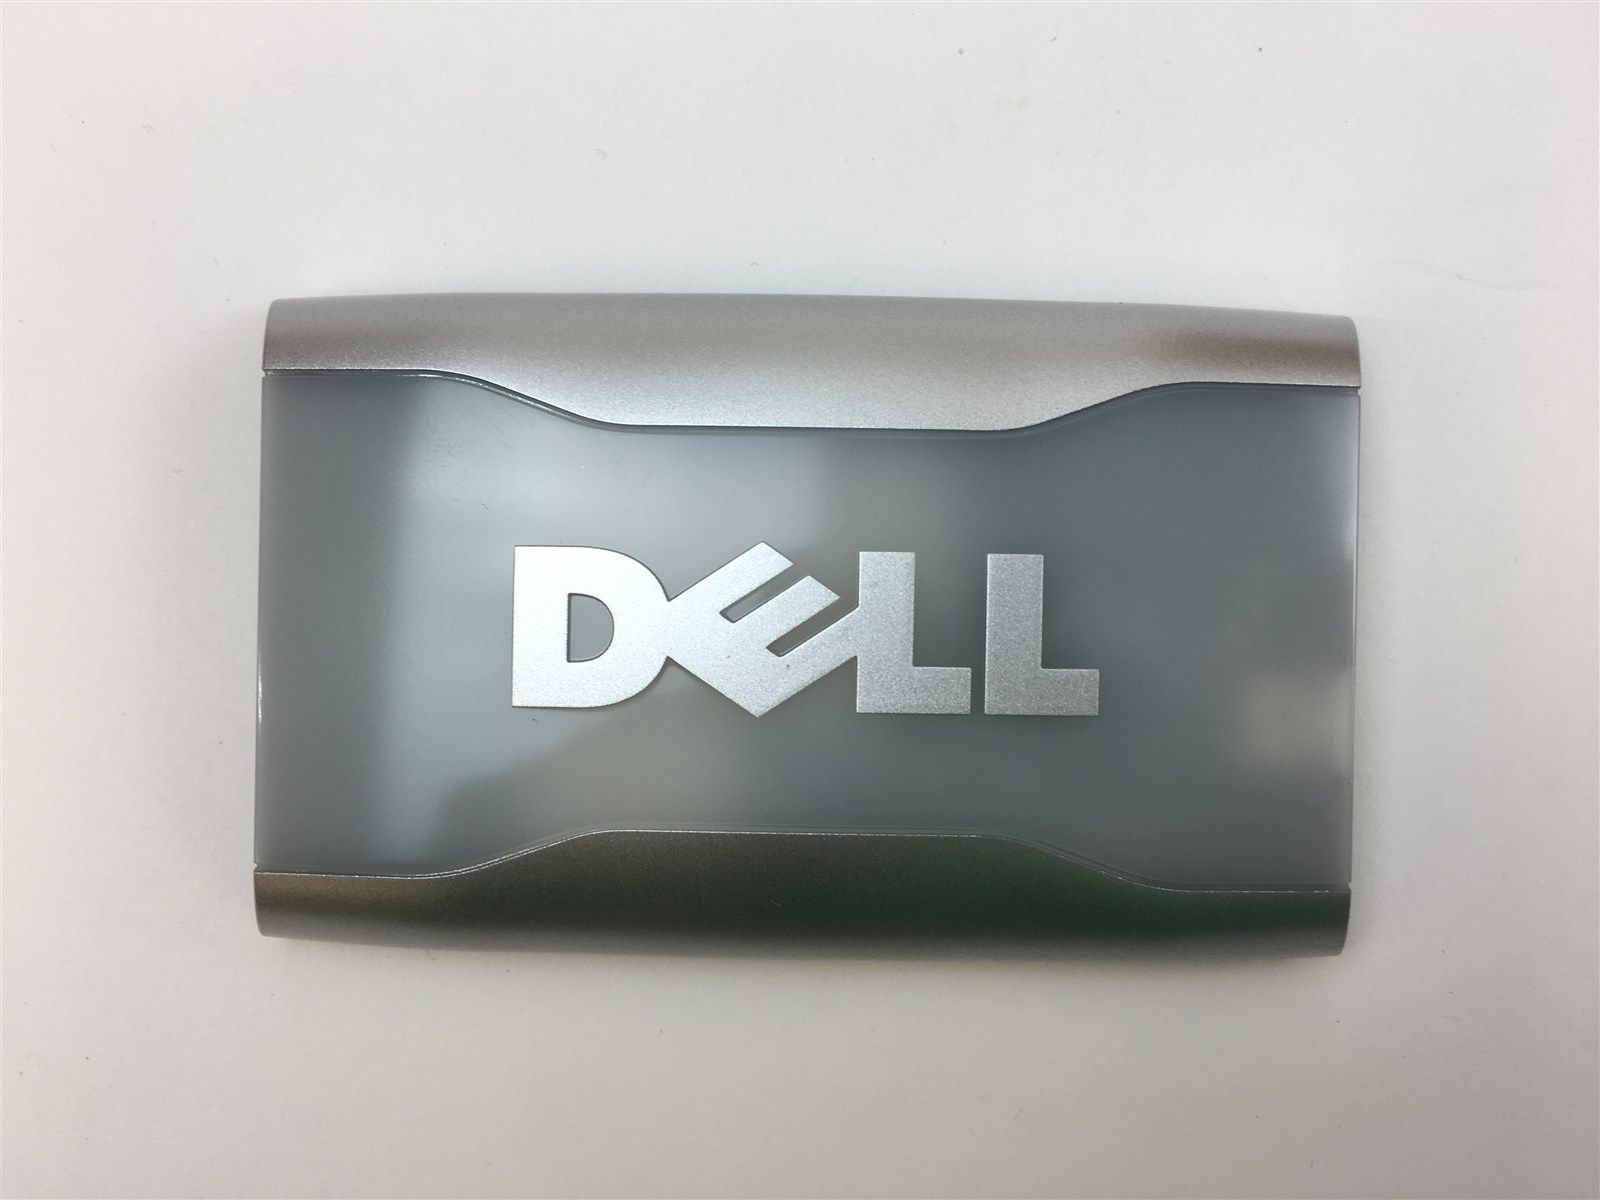 New Genuine Dell Wireless 1450 Network Adapter Kit D1450U WH288 0WH288 XH492